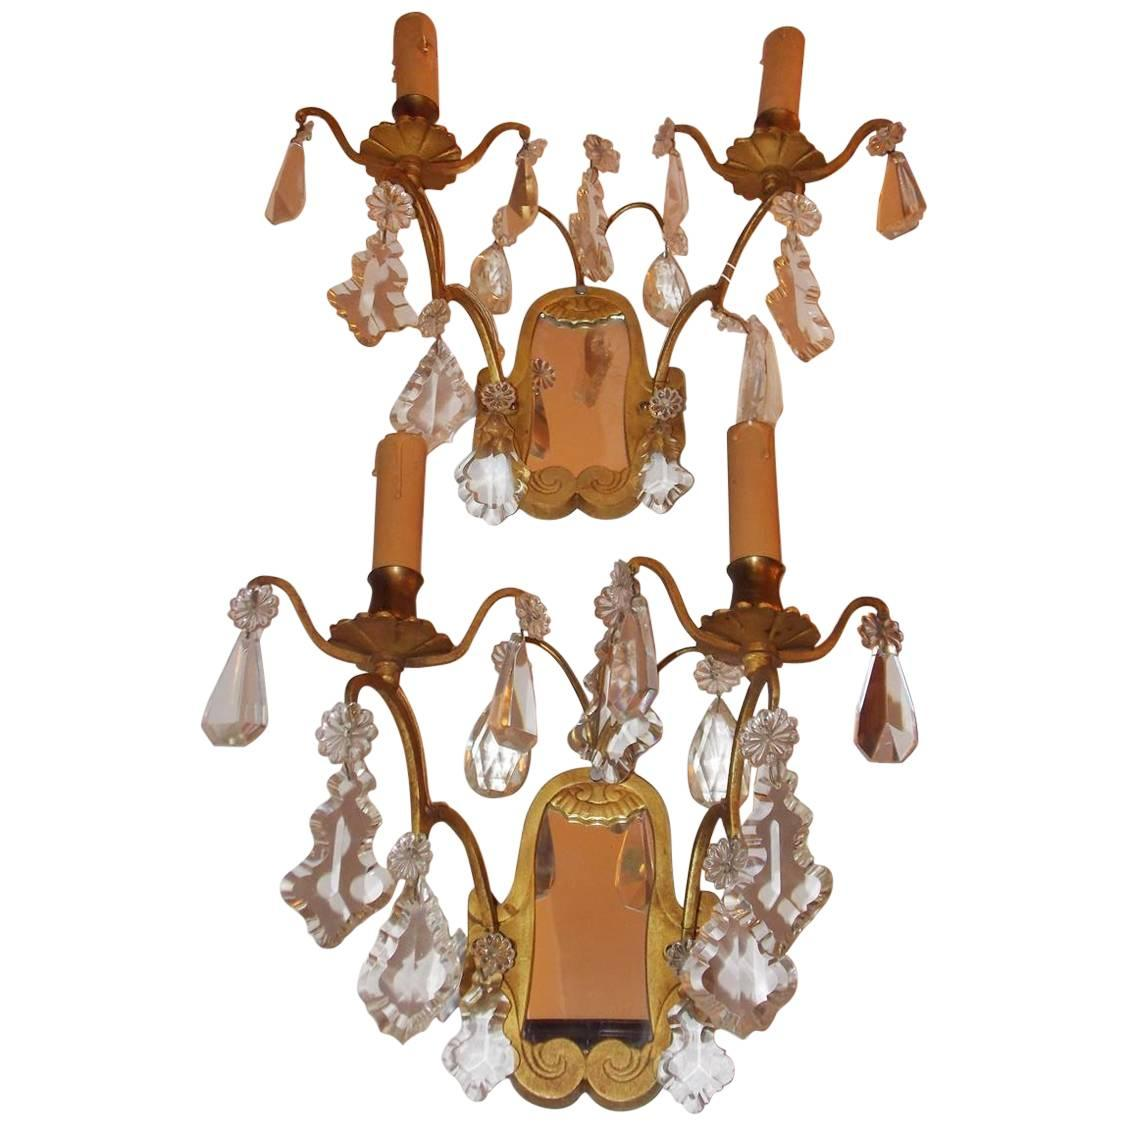 Pair of French Gilt Bronze & Crystal Mirrored Wall Sconces, Circa 1870